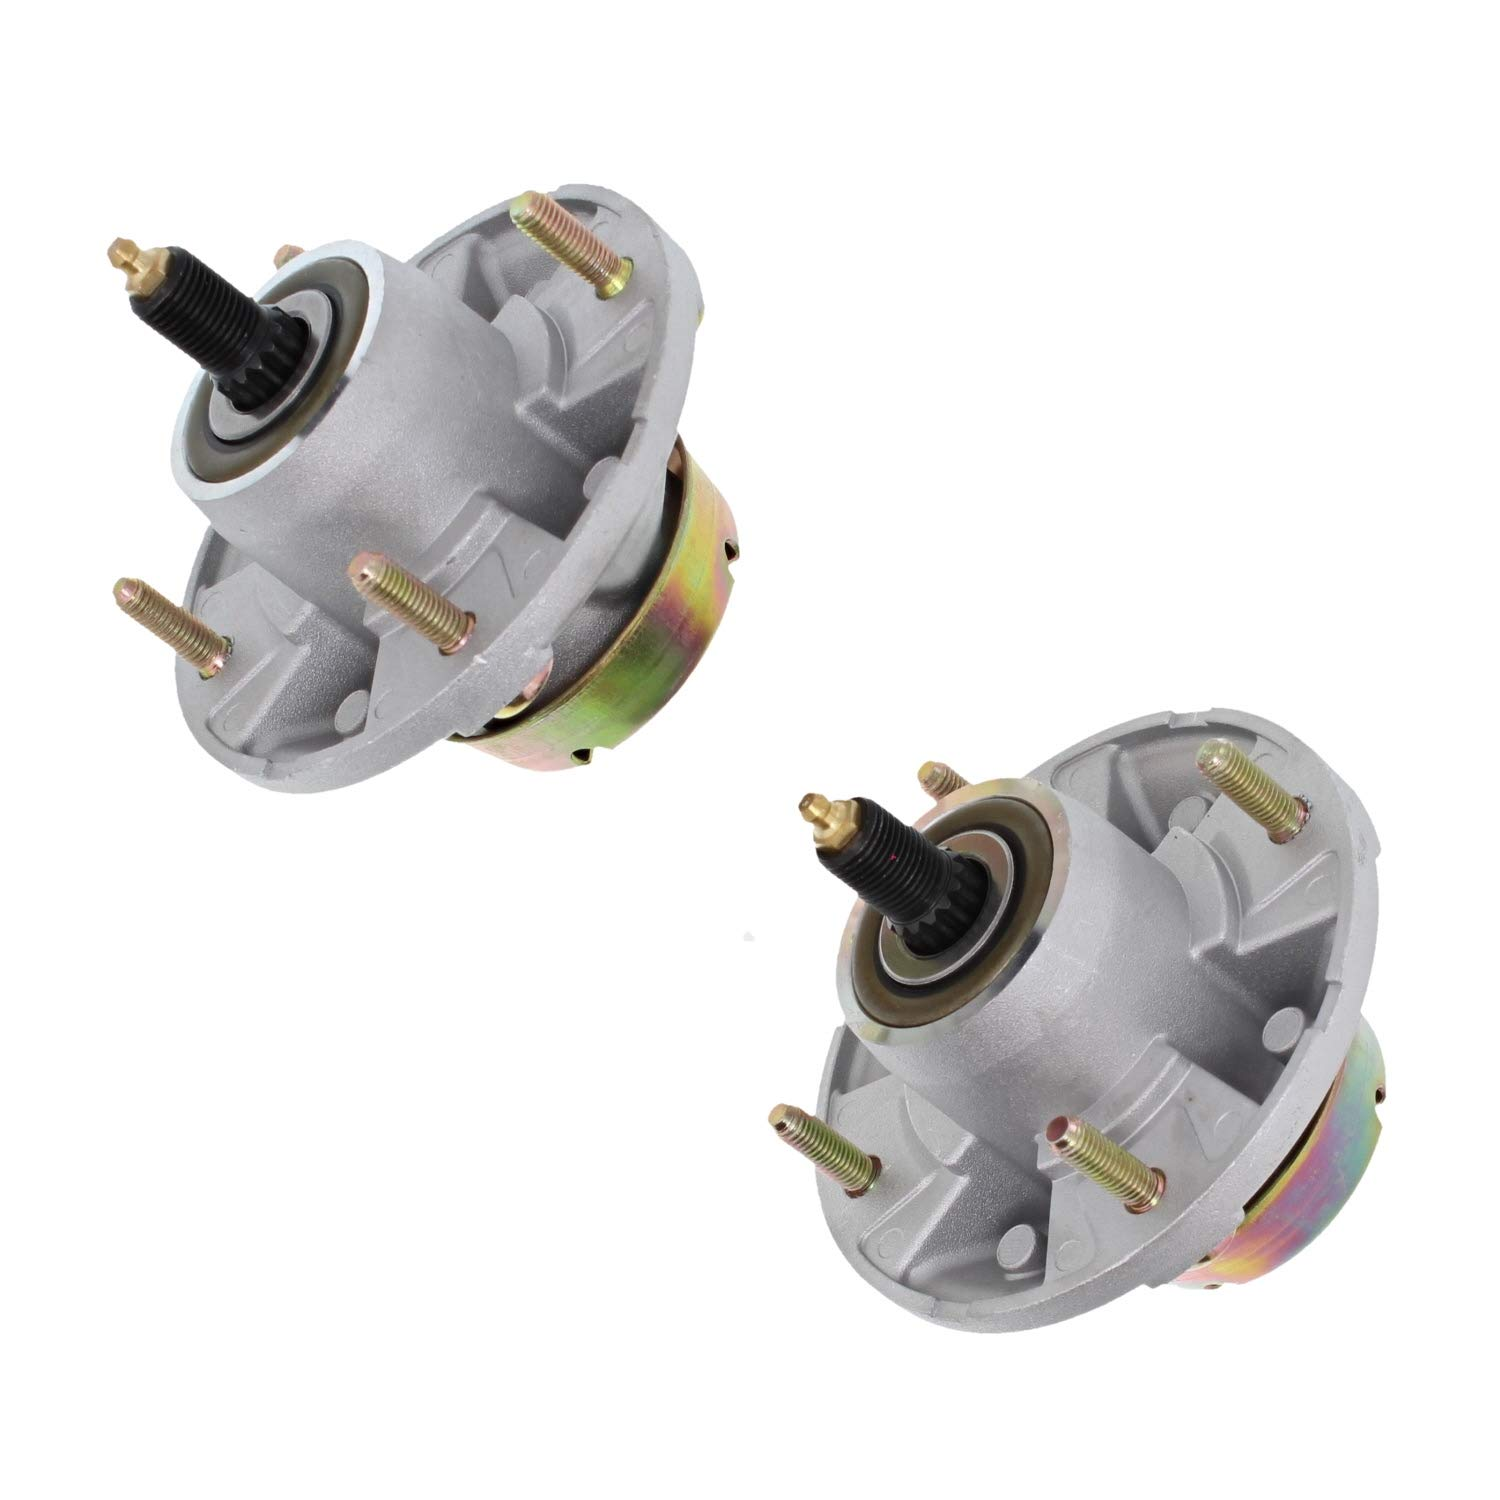 NICHE 2 Pack Spindle Assembly for John Deere 48 54 60 72 Deck AM135349 AM144377